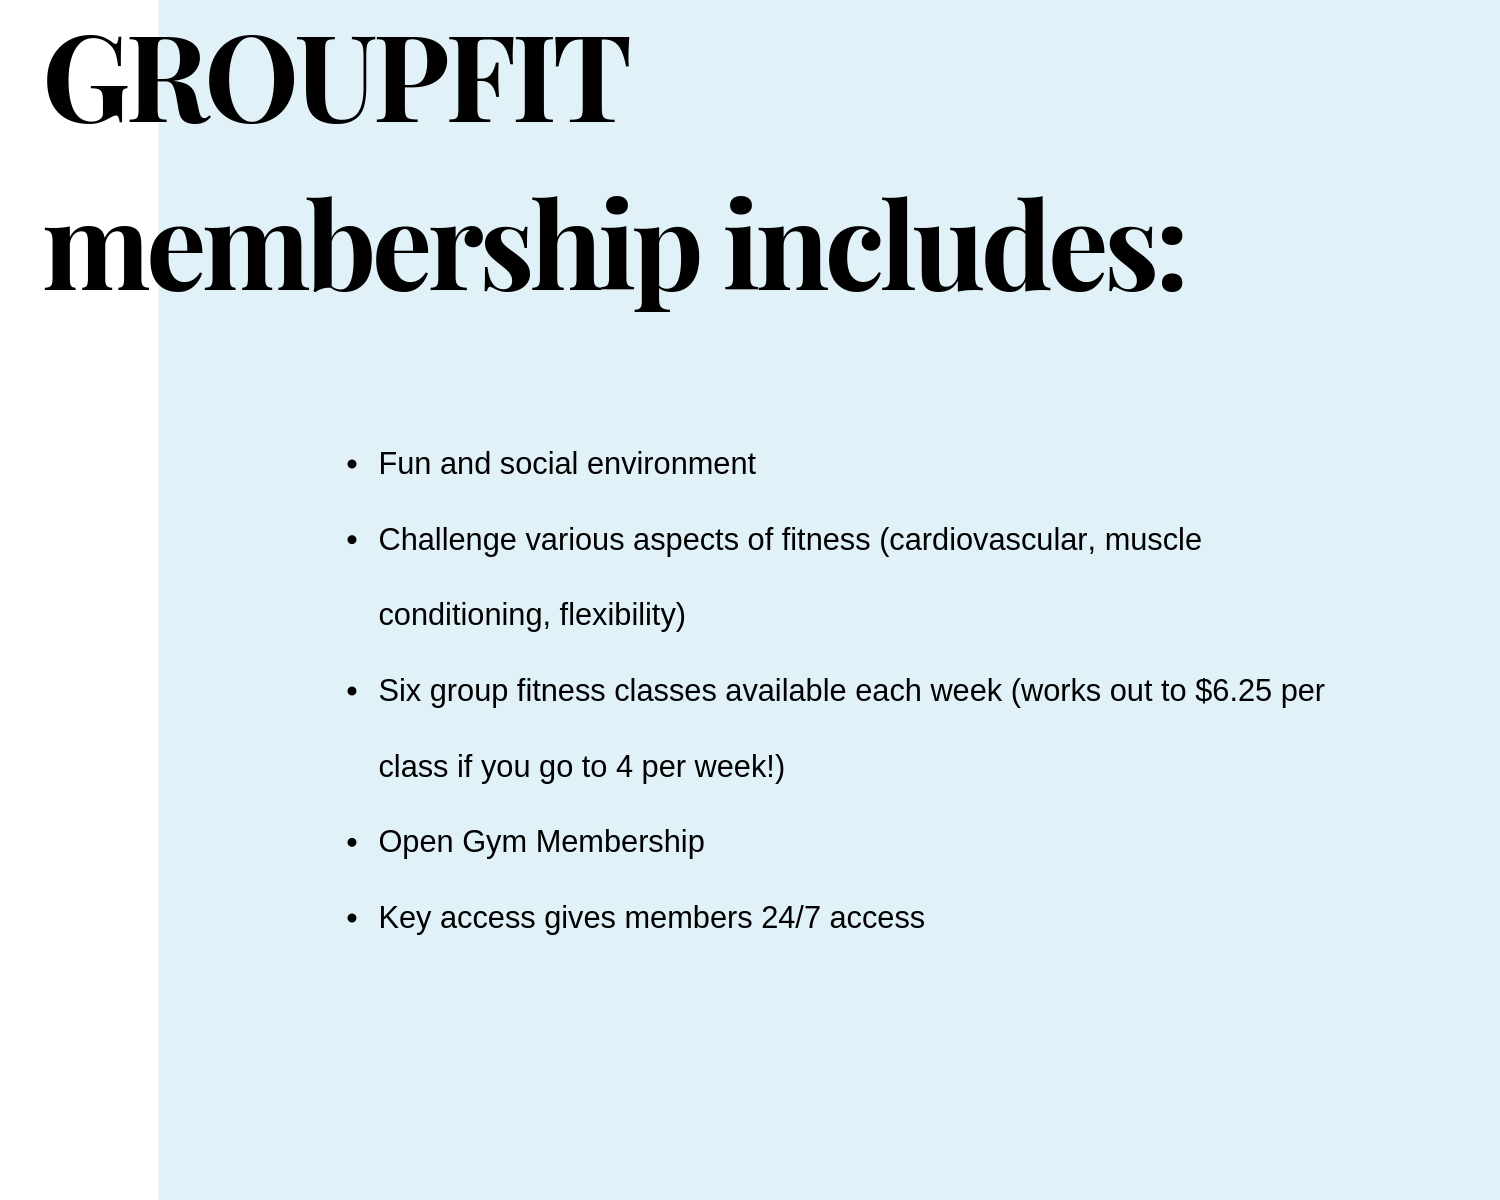 groupfitmembership.png